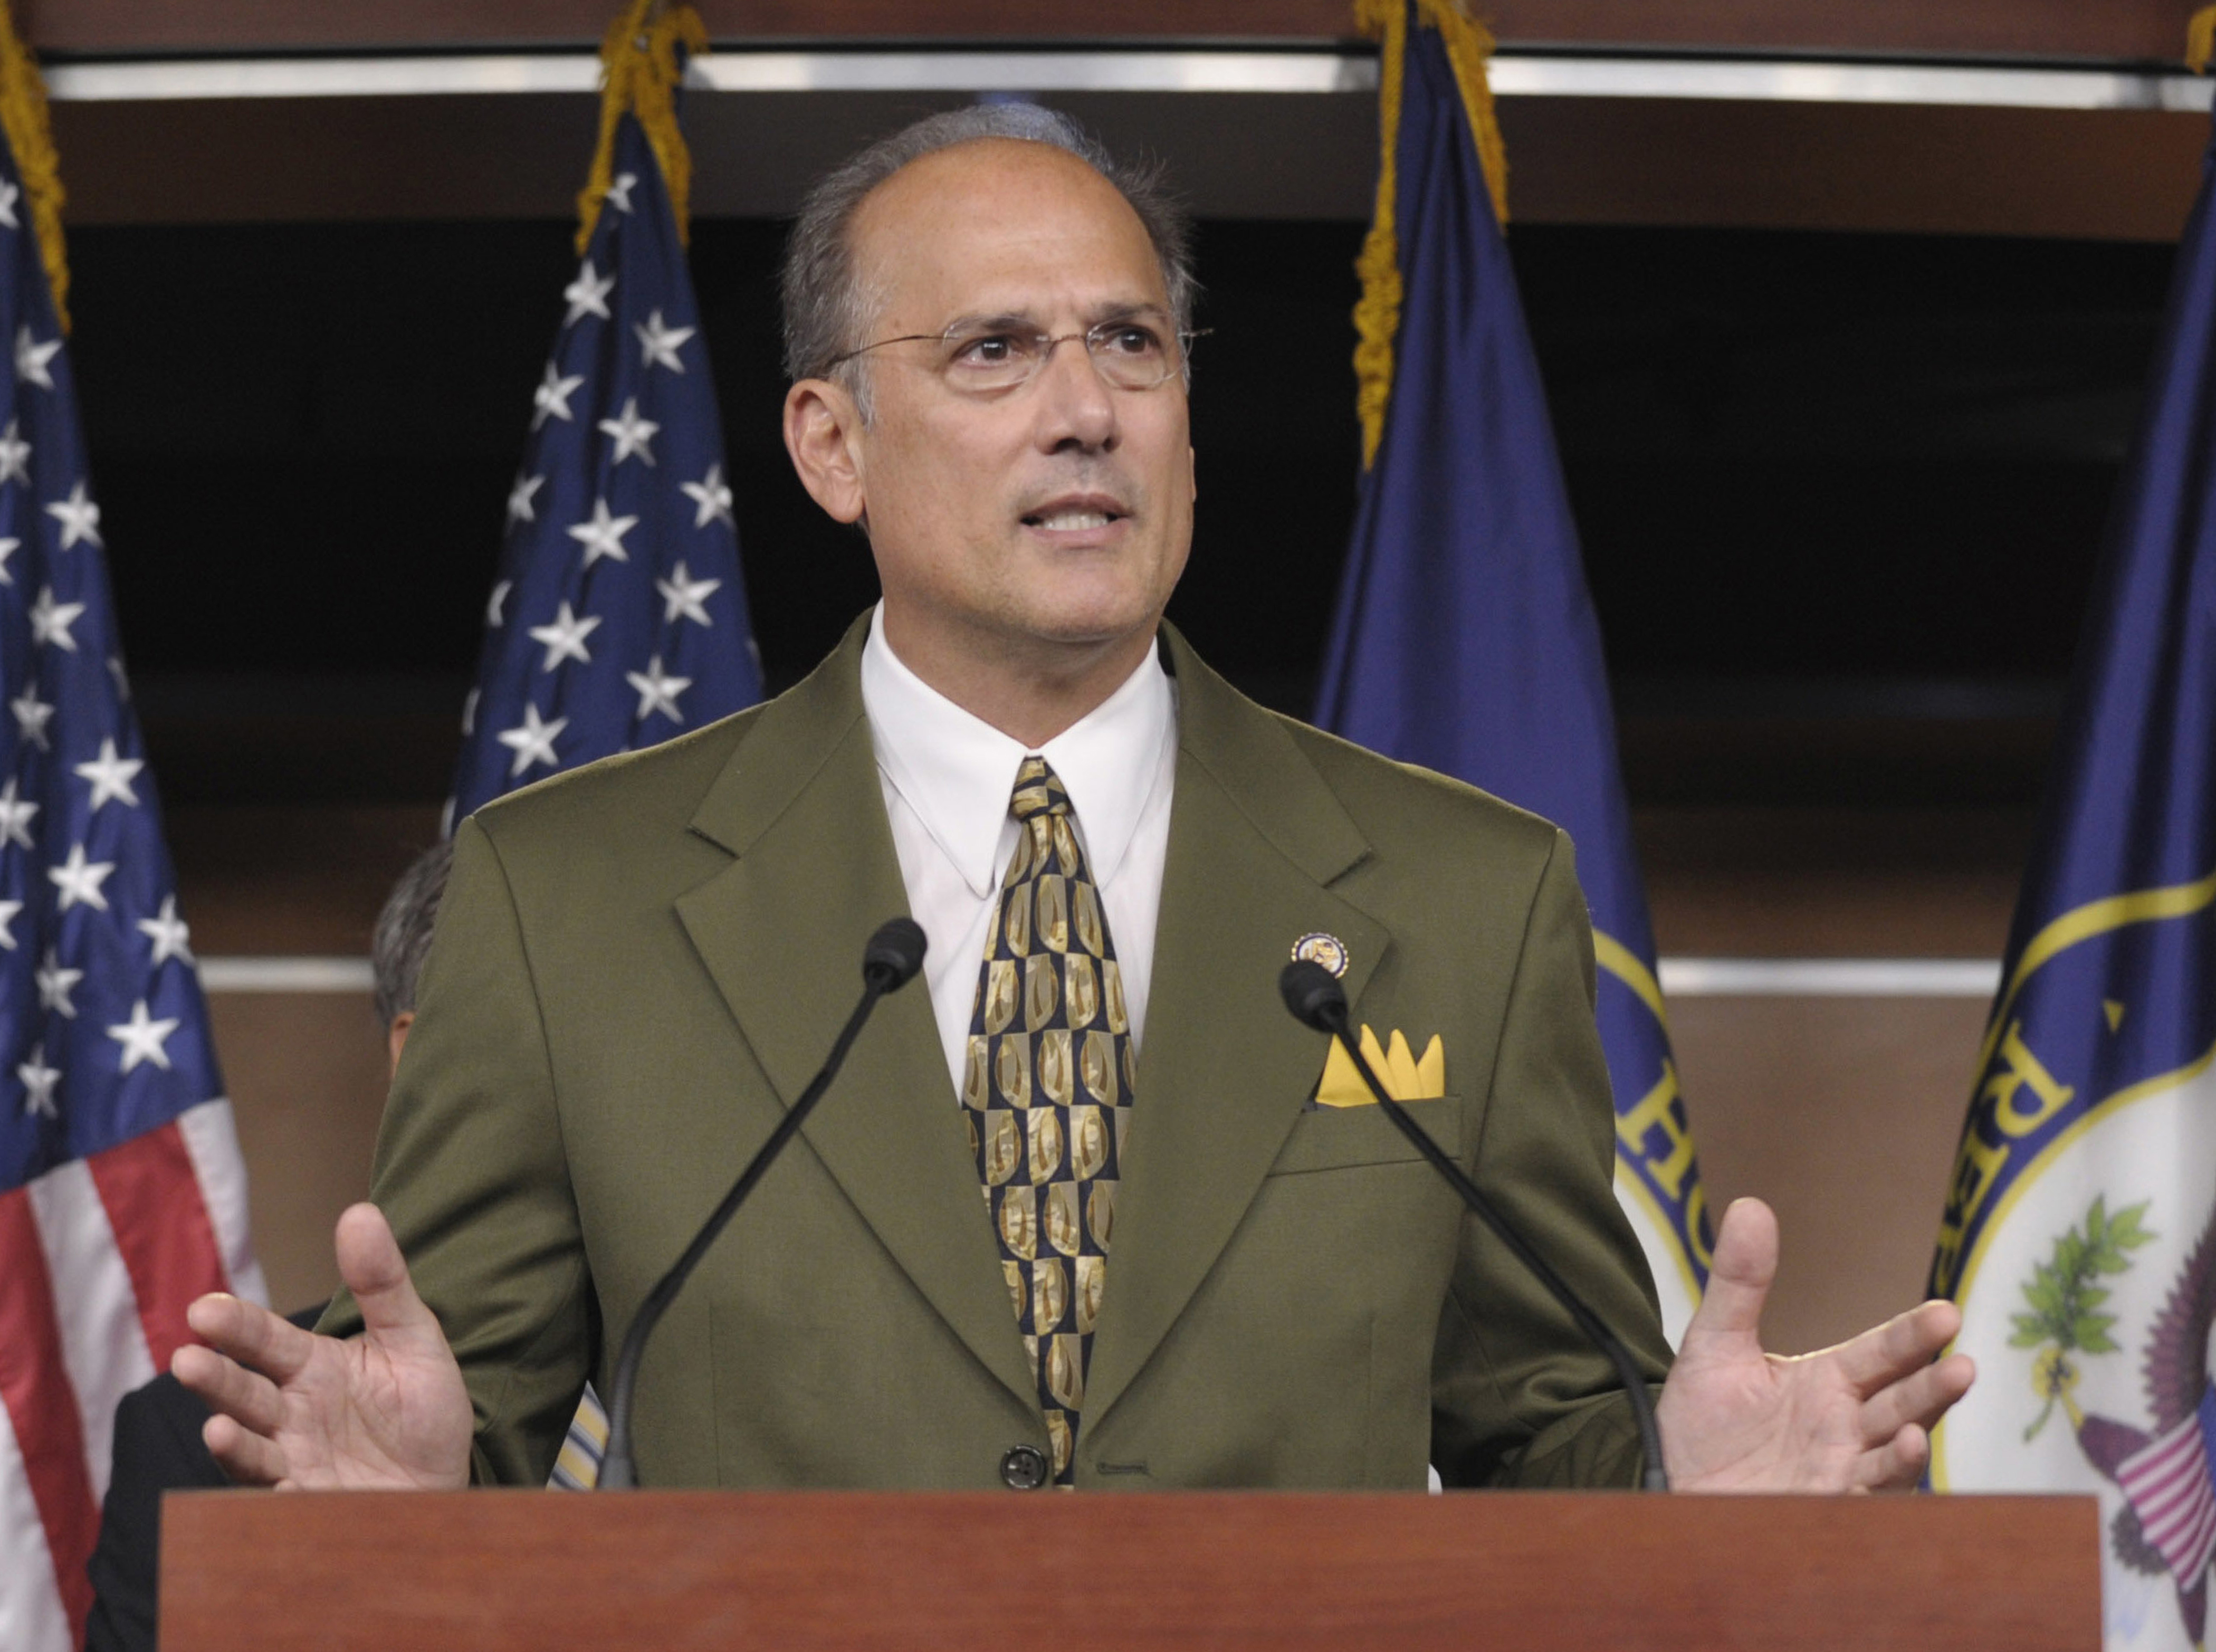 In this Sept. 23, 2011 file photo, Rep. Thomas Marino, R-Pa., speaks during a news conference on Capitol Hill in Washington. (Susan Walsh/AP)